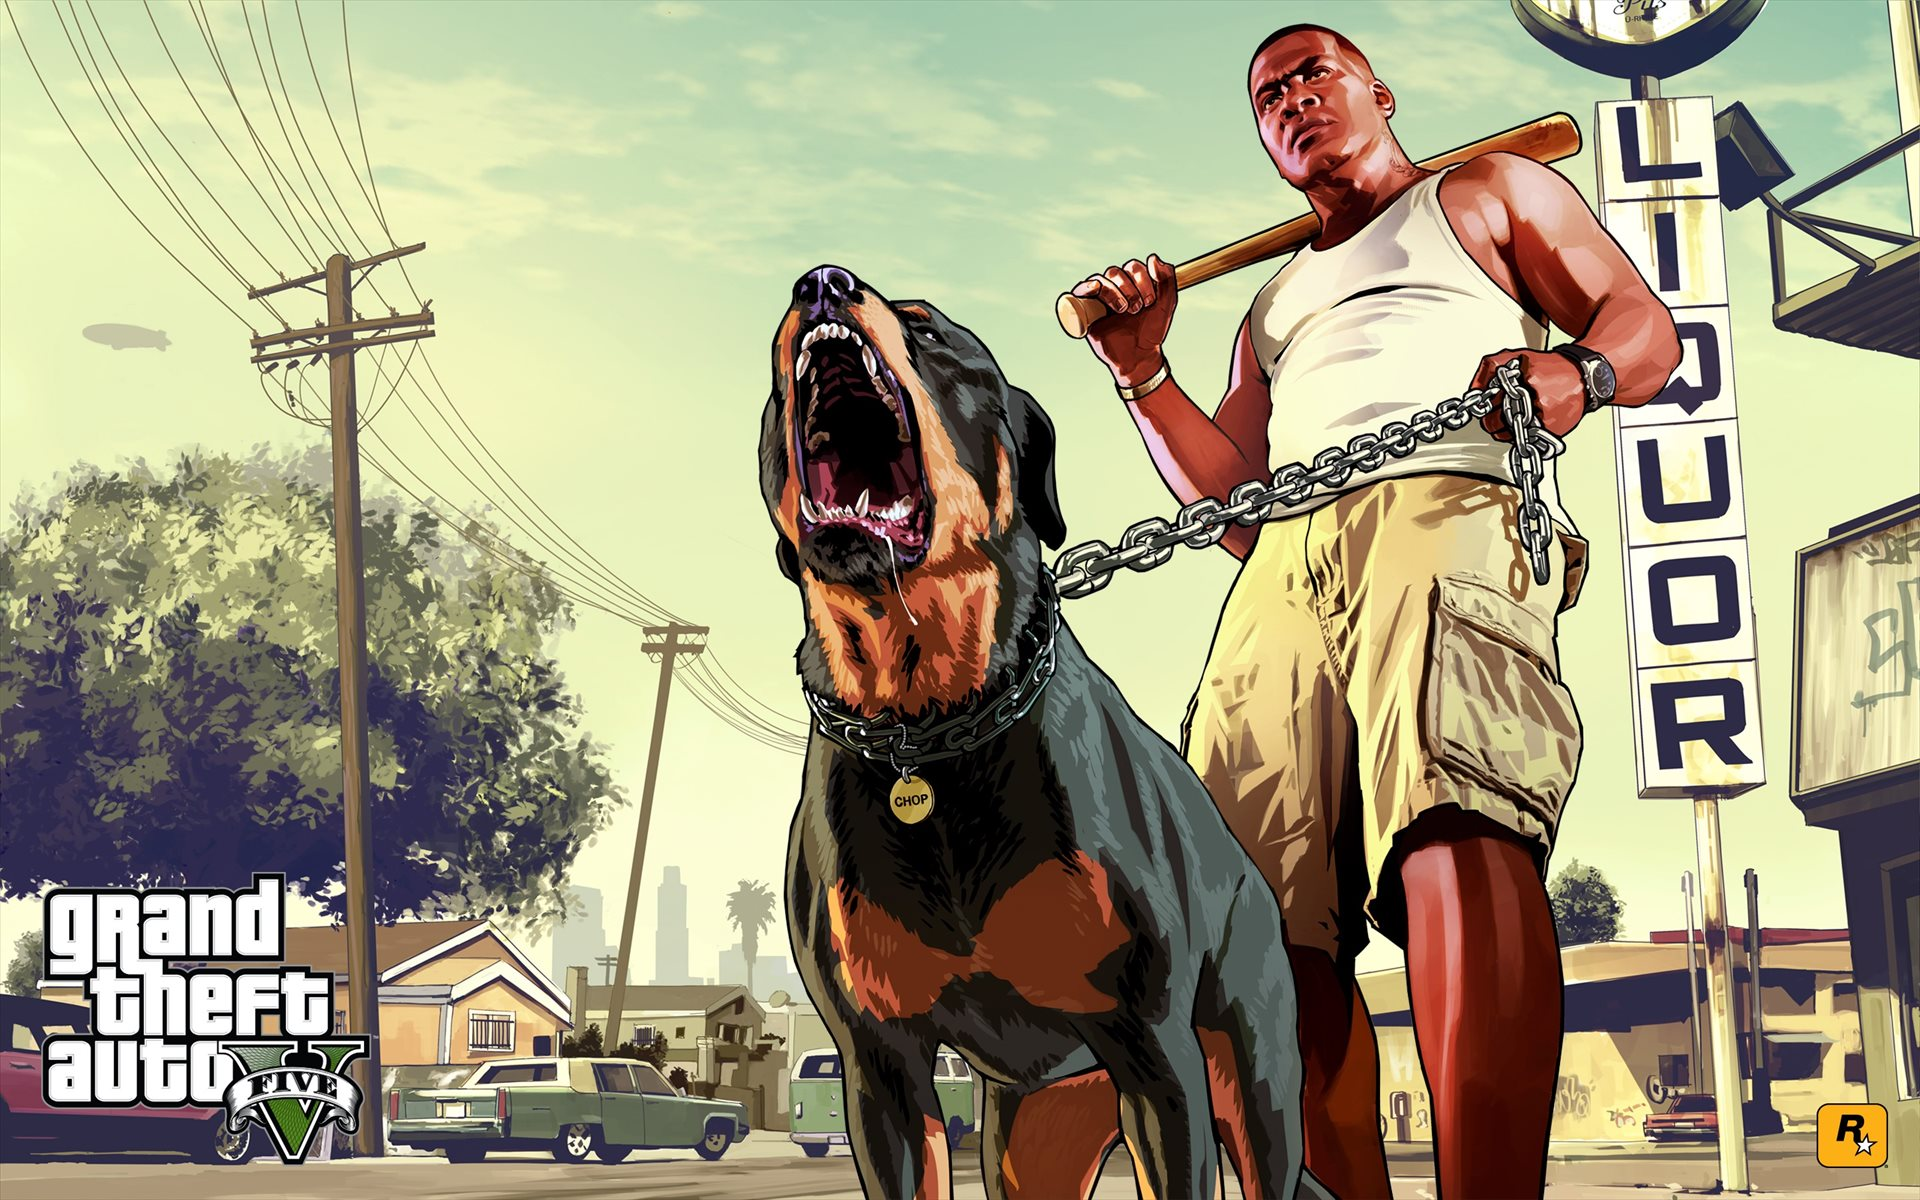 gta 5 wallpaper 02 150x150 Download Cool GTA 5 Wallpapers 1920x1200